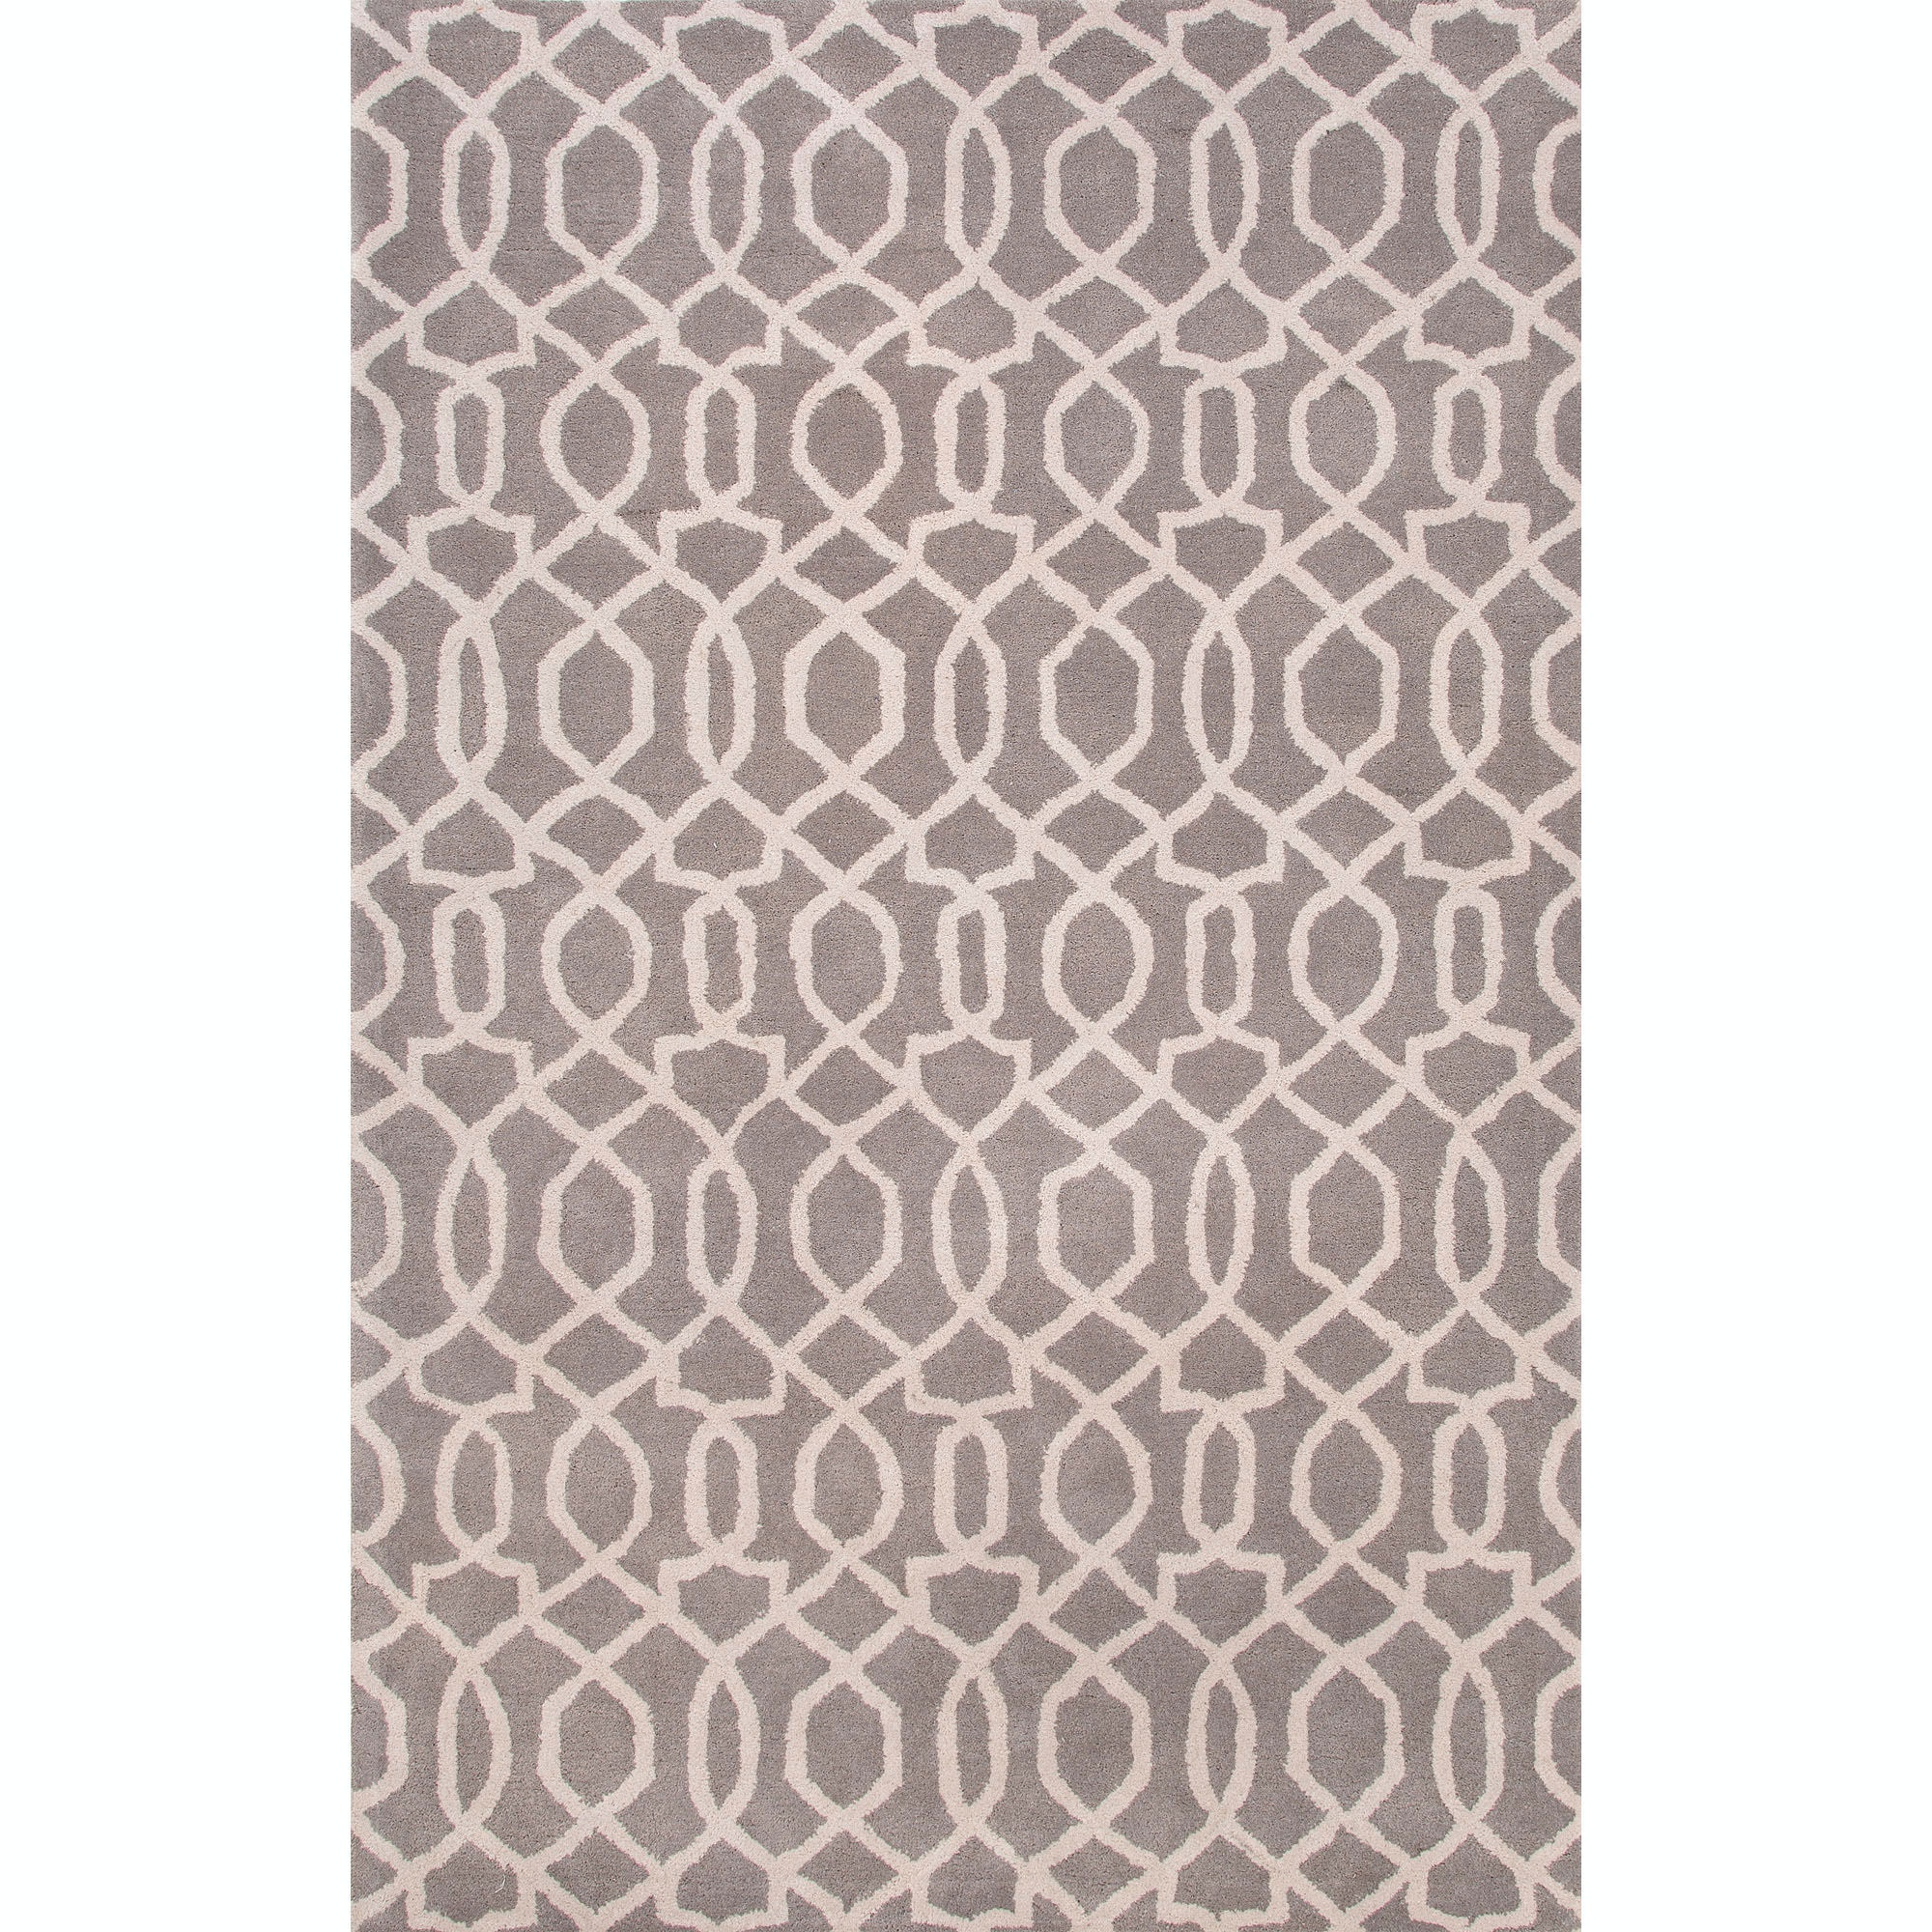 Jaipur Rugs Floor Coverings Hand Tufted Textured Wool Gray Ivory